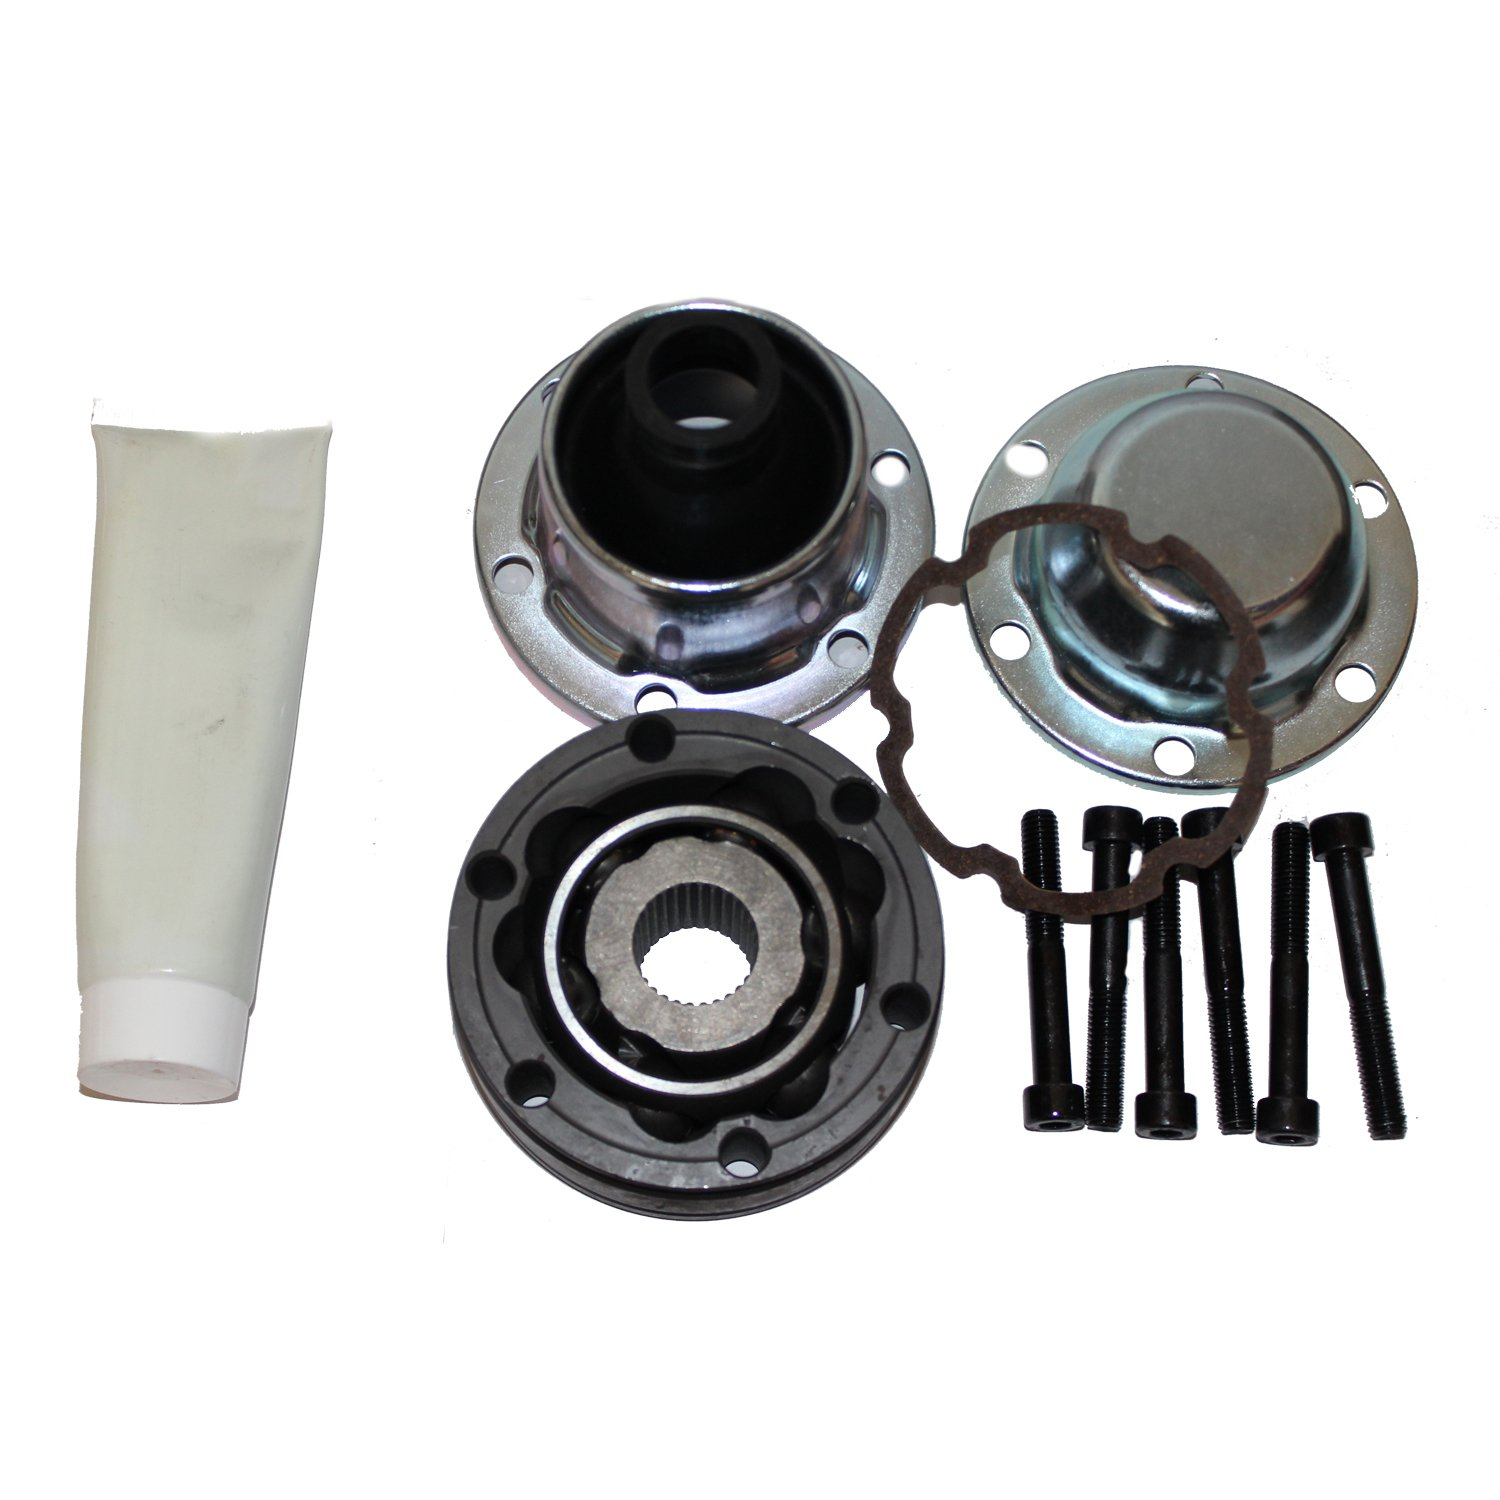 07-11 Dodge Nitro 4x4 2007-2009 Pontiac Torrent AWD - - 08-12 Liberty 4x4 - 2007-2011 Chevy Equinox AWD - 2010-2011 GMC Terrain AWD Front Prop Shaft Rear Position CV Joint Kit for AWD Only